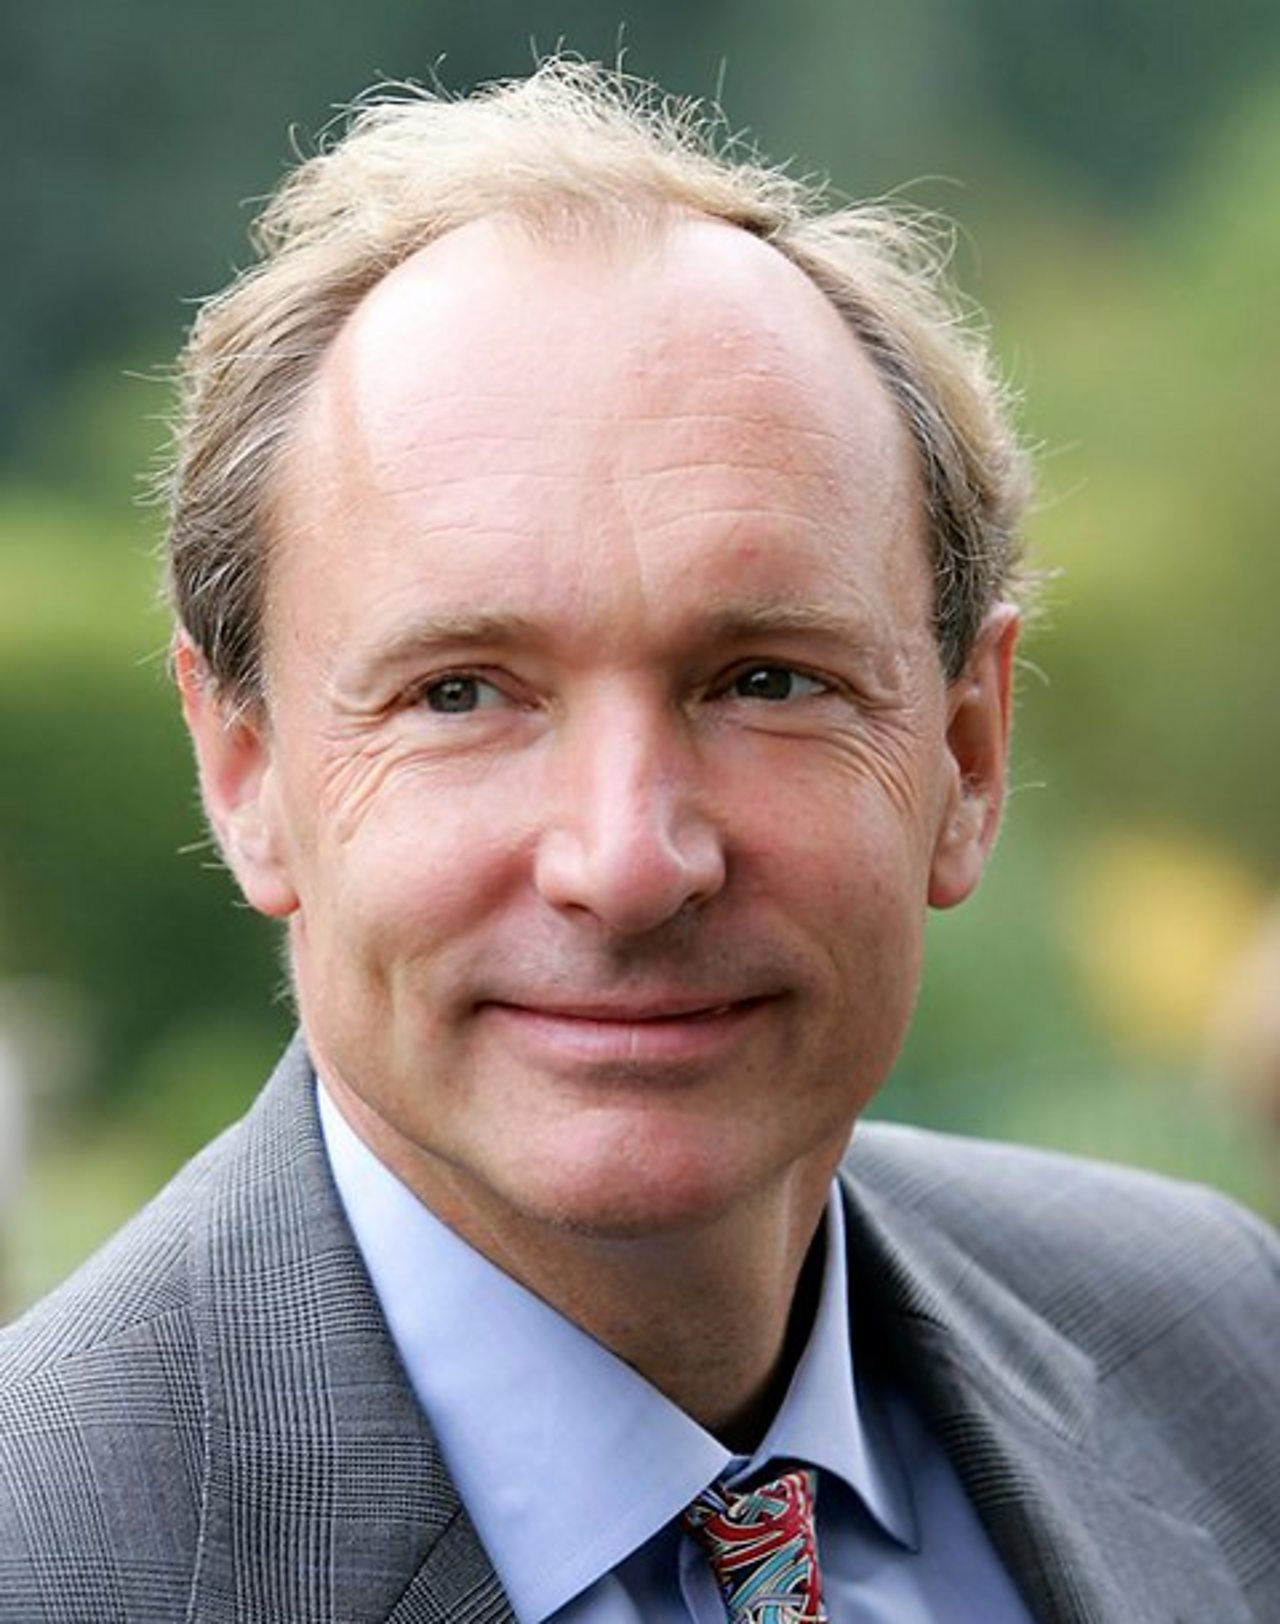 A photo of Tim Berners-Lee